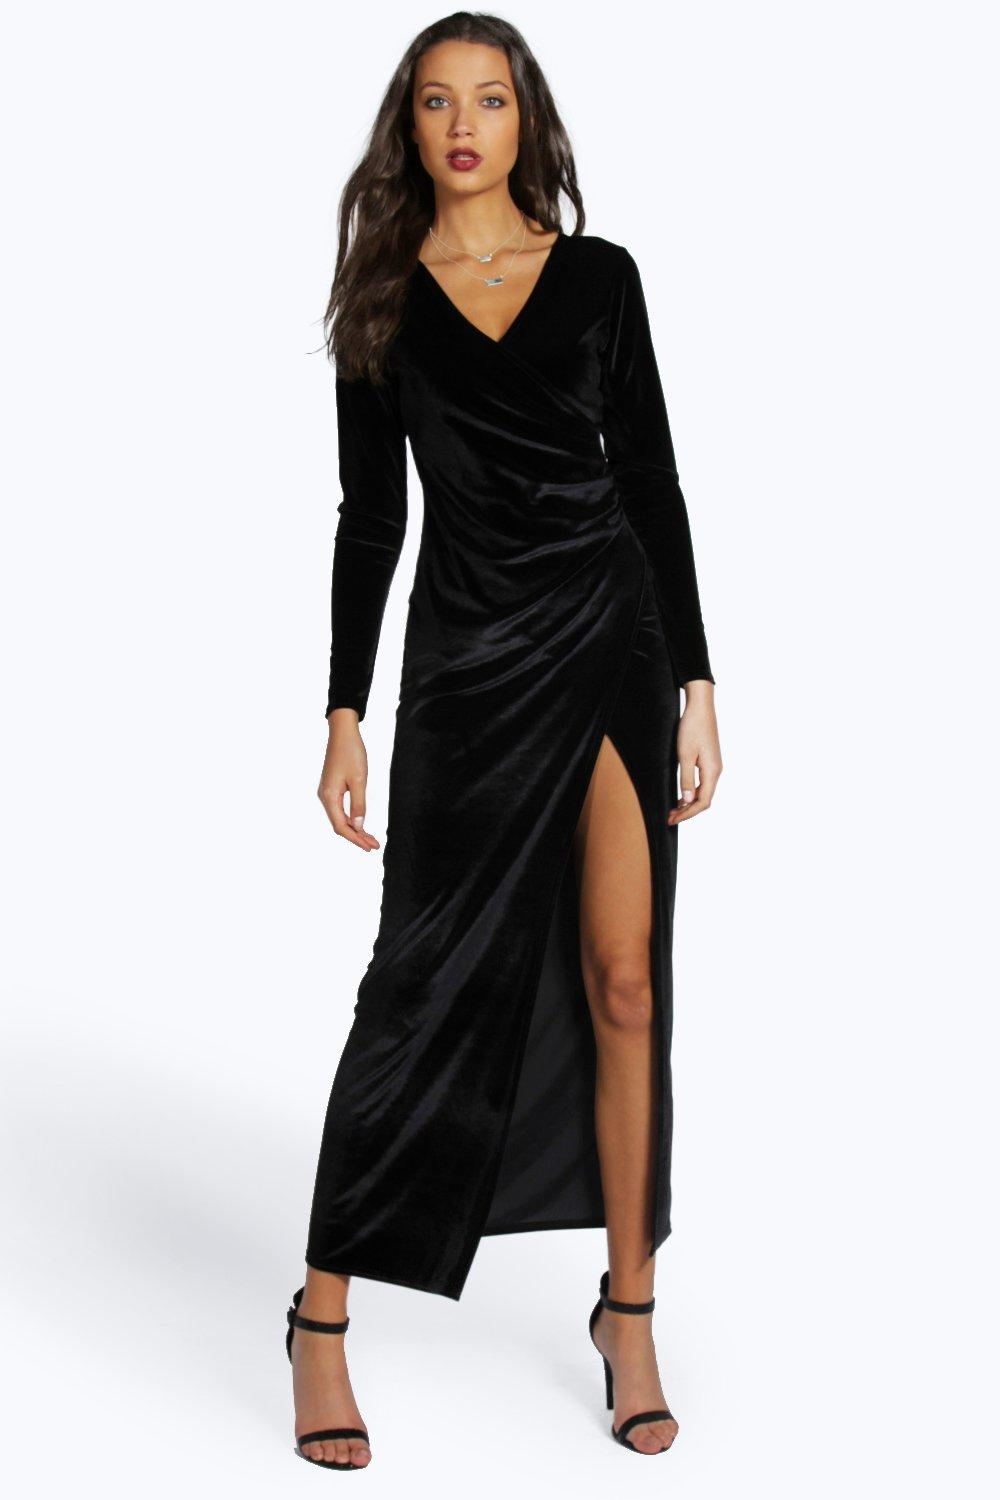 evening dresses for tall women photo - 1